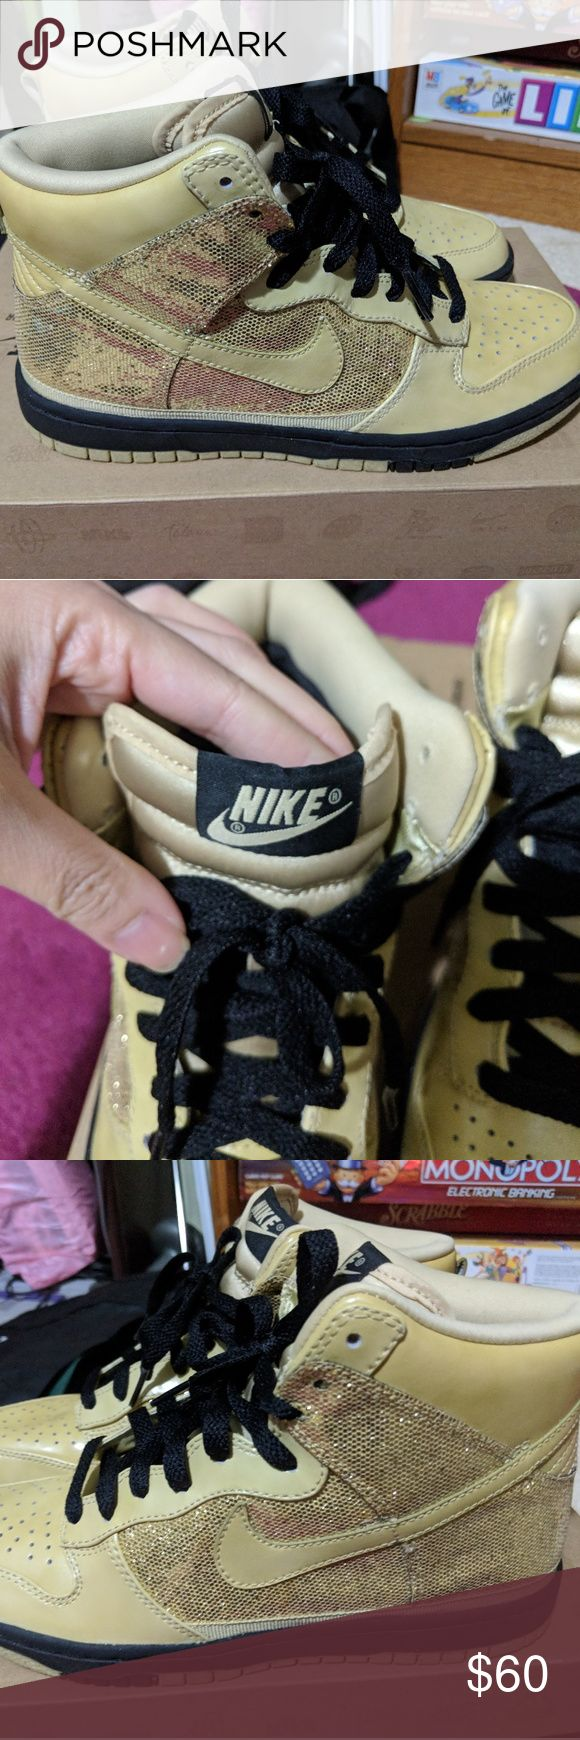 Nike high top dunks: metallic gold, gold, and blac New, never worn Nike high top dunks: metallic gold, gold, and black. Nike Shoes Sneakers